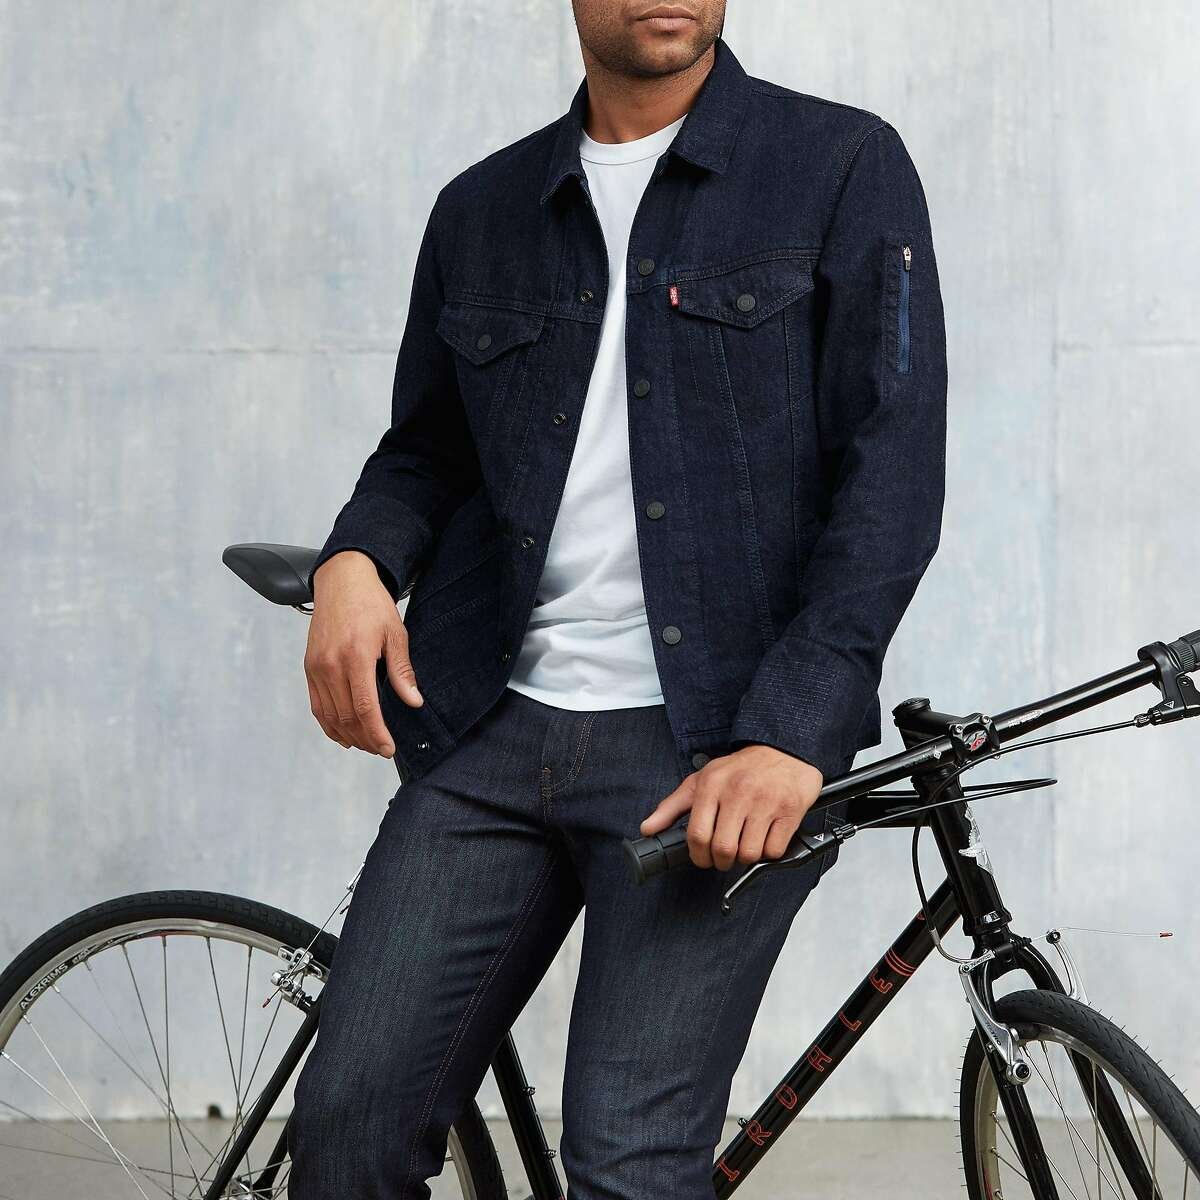 The Levi's Commuter jean with Jacquard